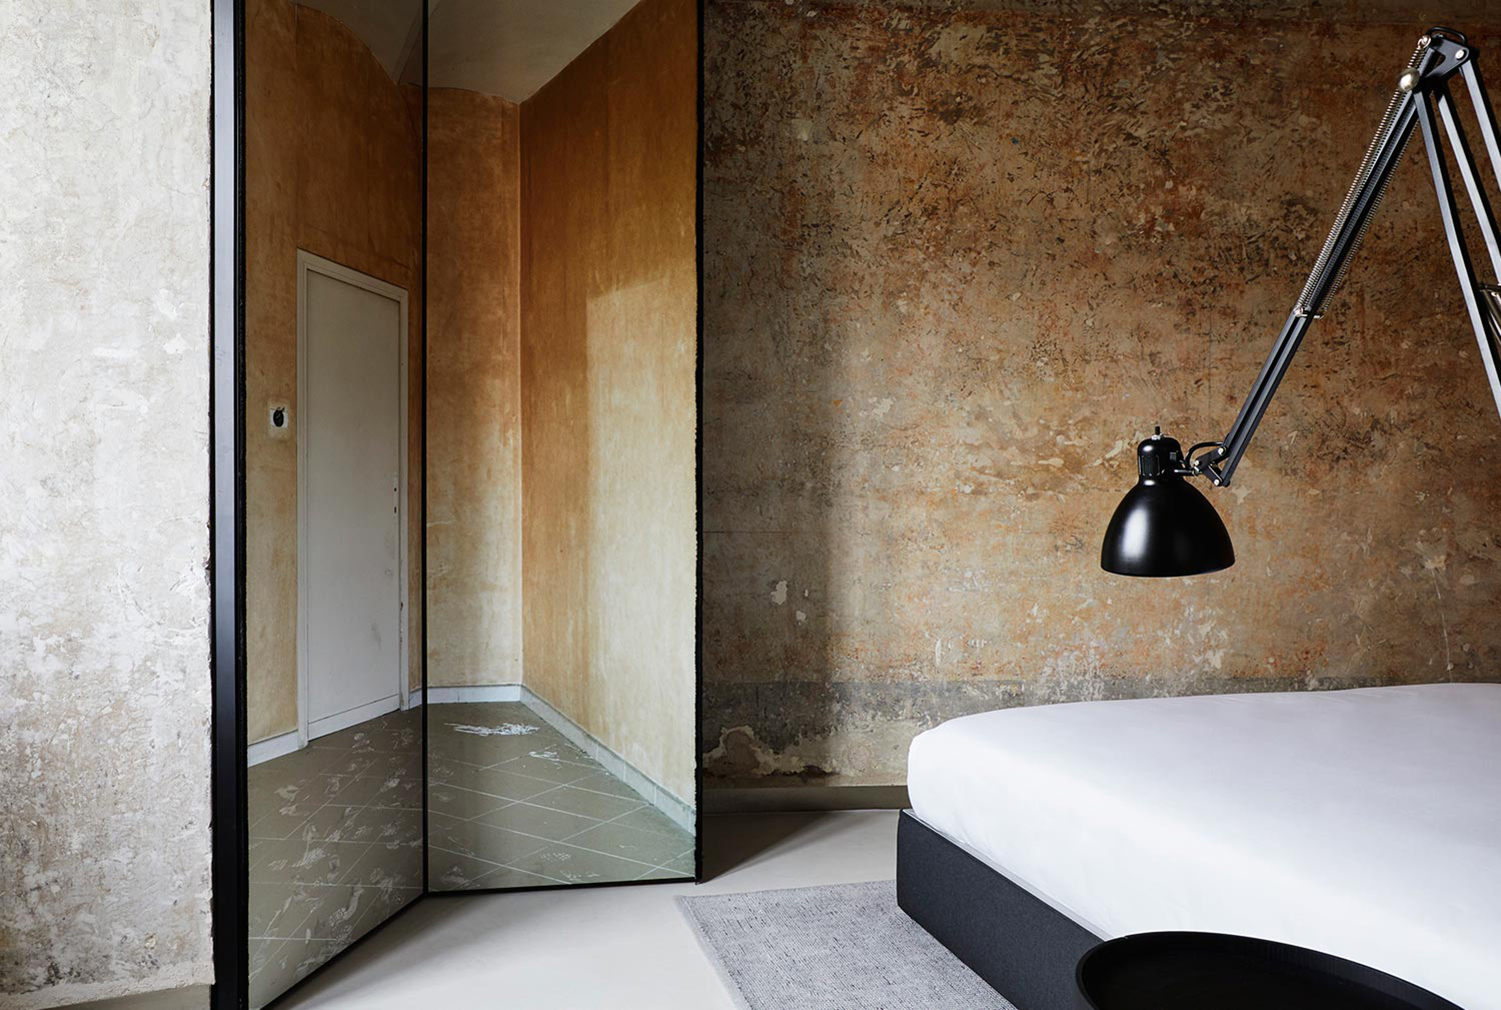 The Rooms of Rome boutique apartments in Rome